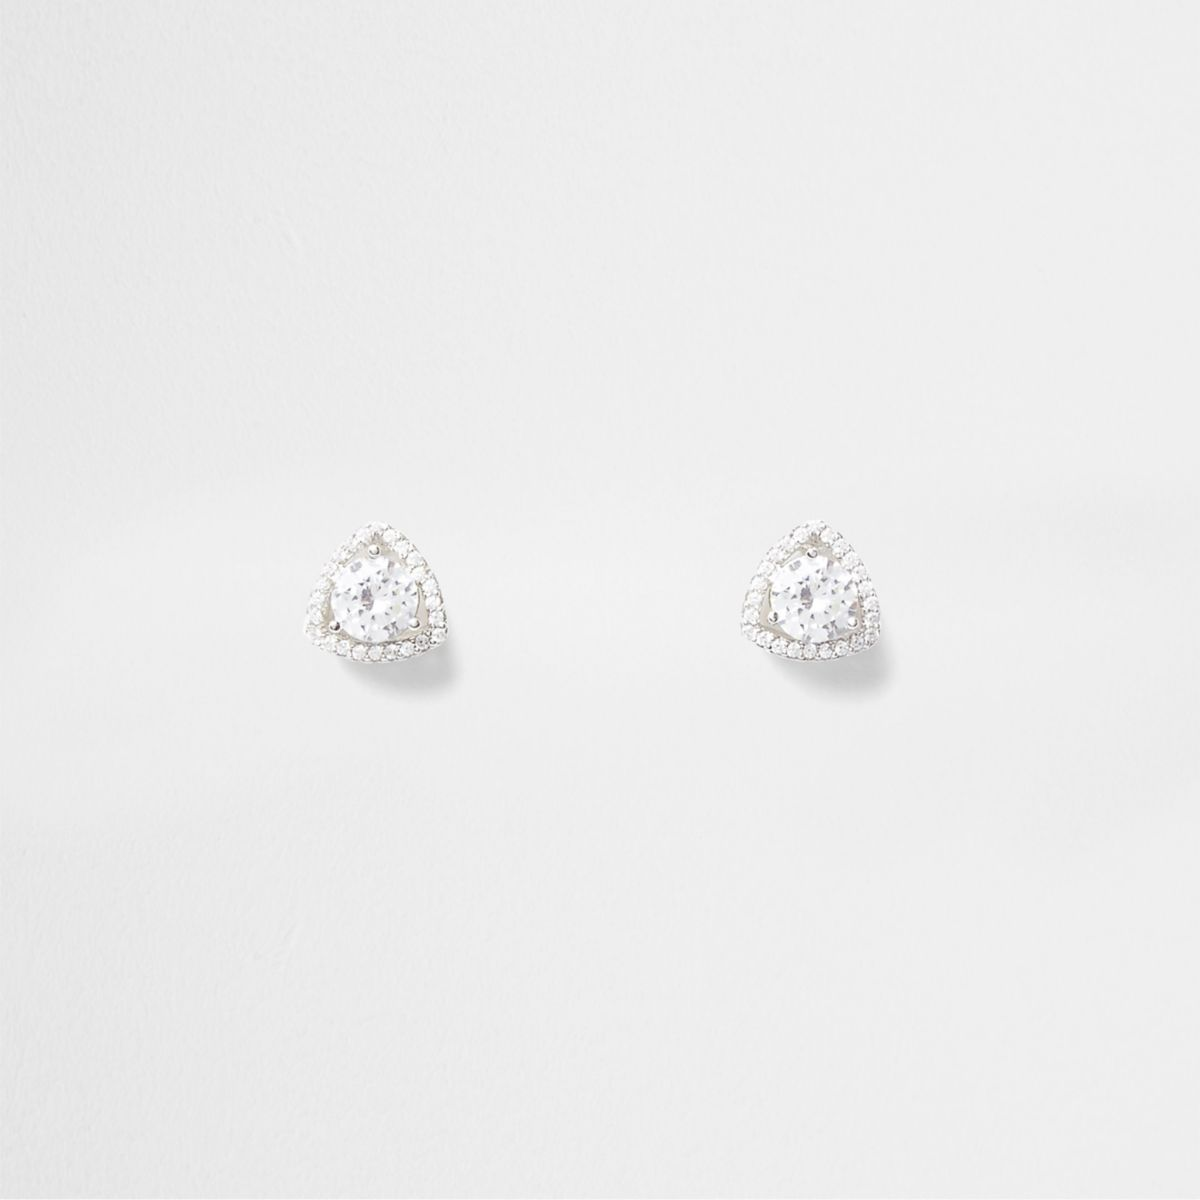 Silver tone triangle cubic zirconia earrings